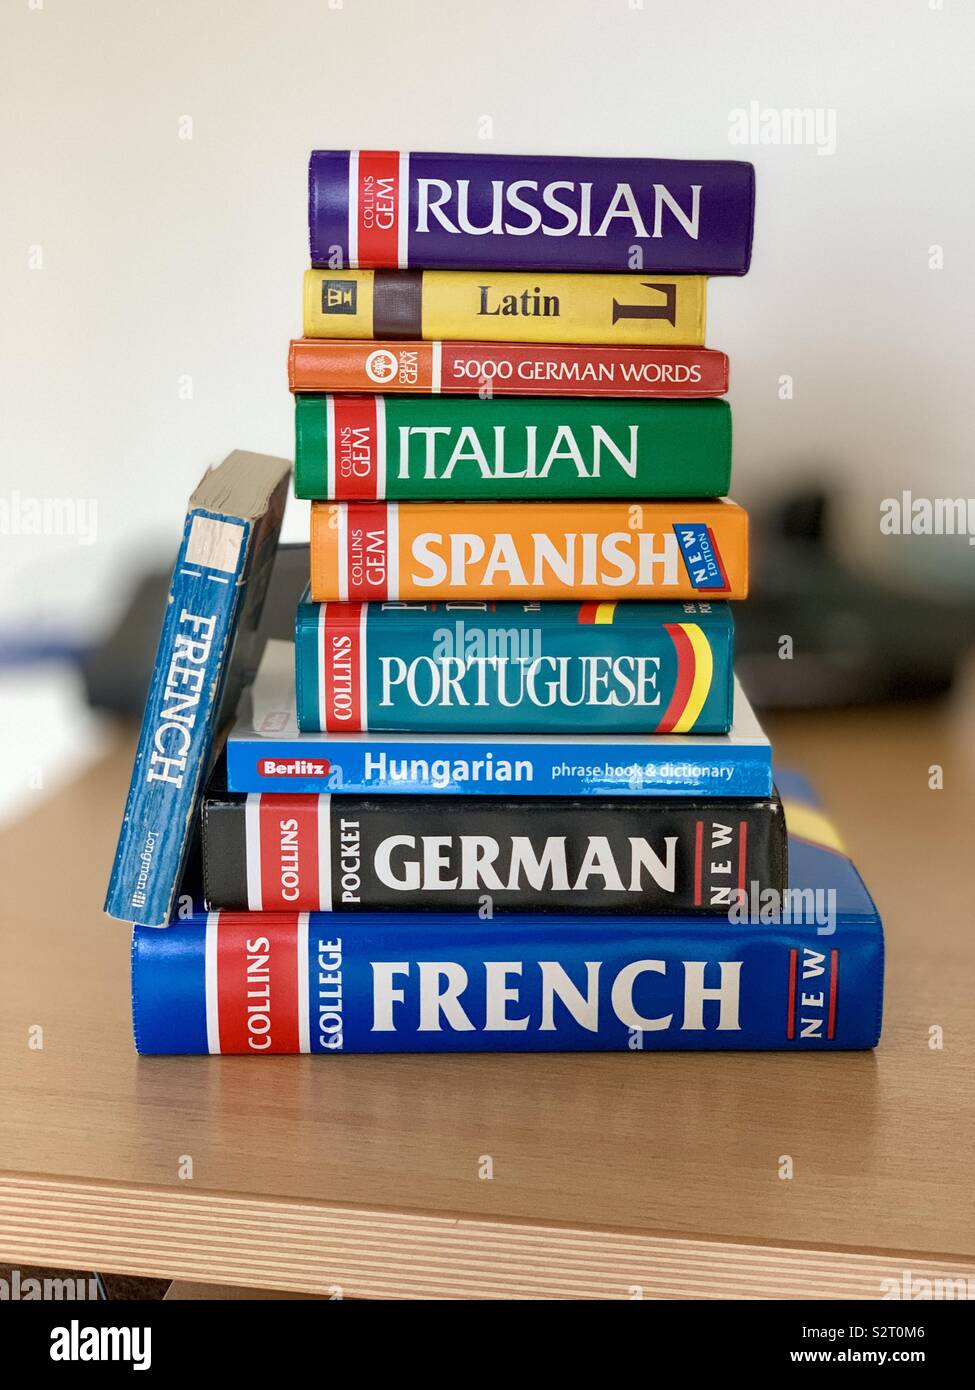 A stack of English to other language dictionaries. Stock Photo